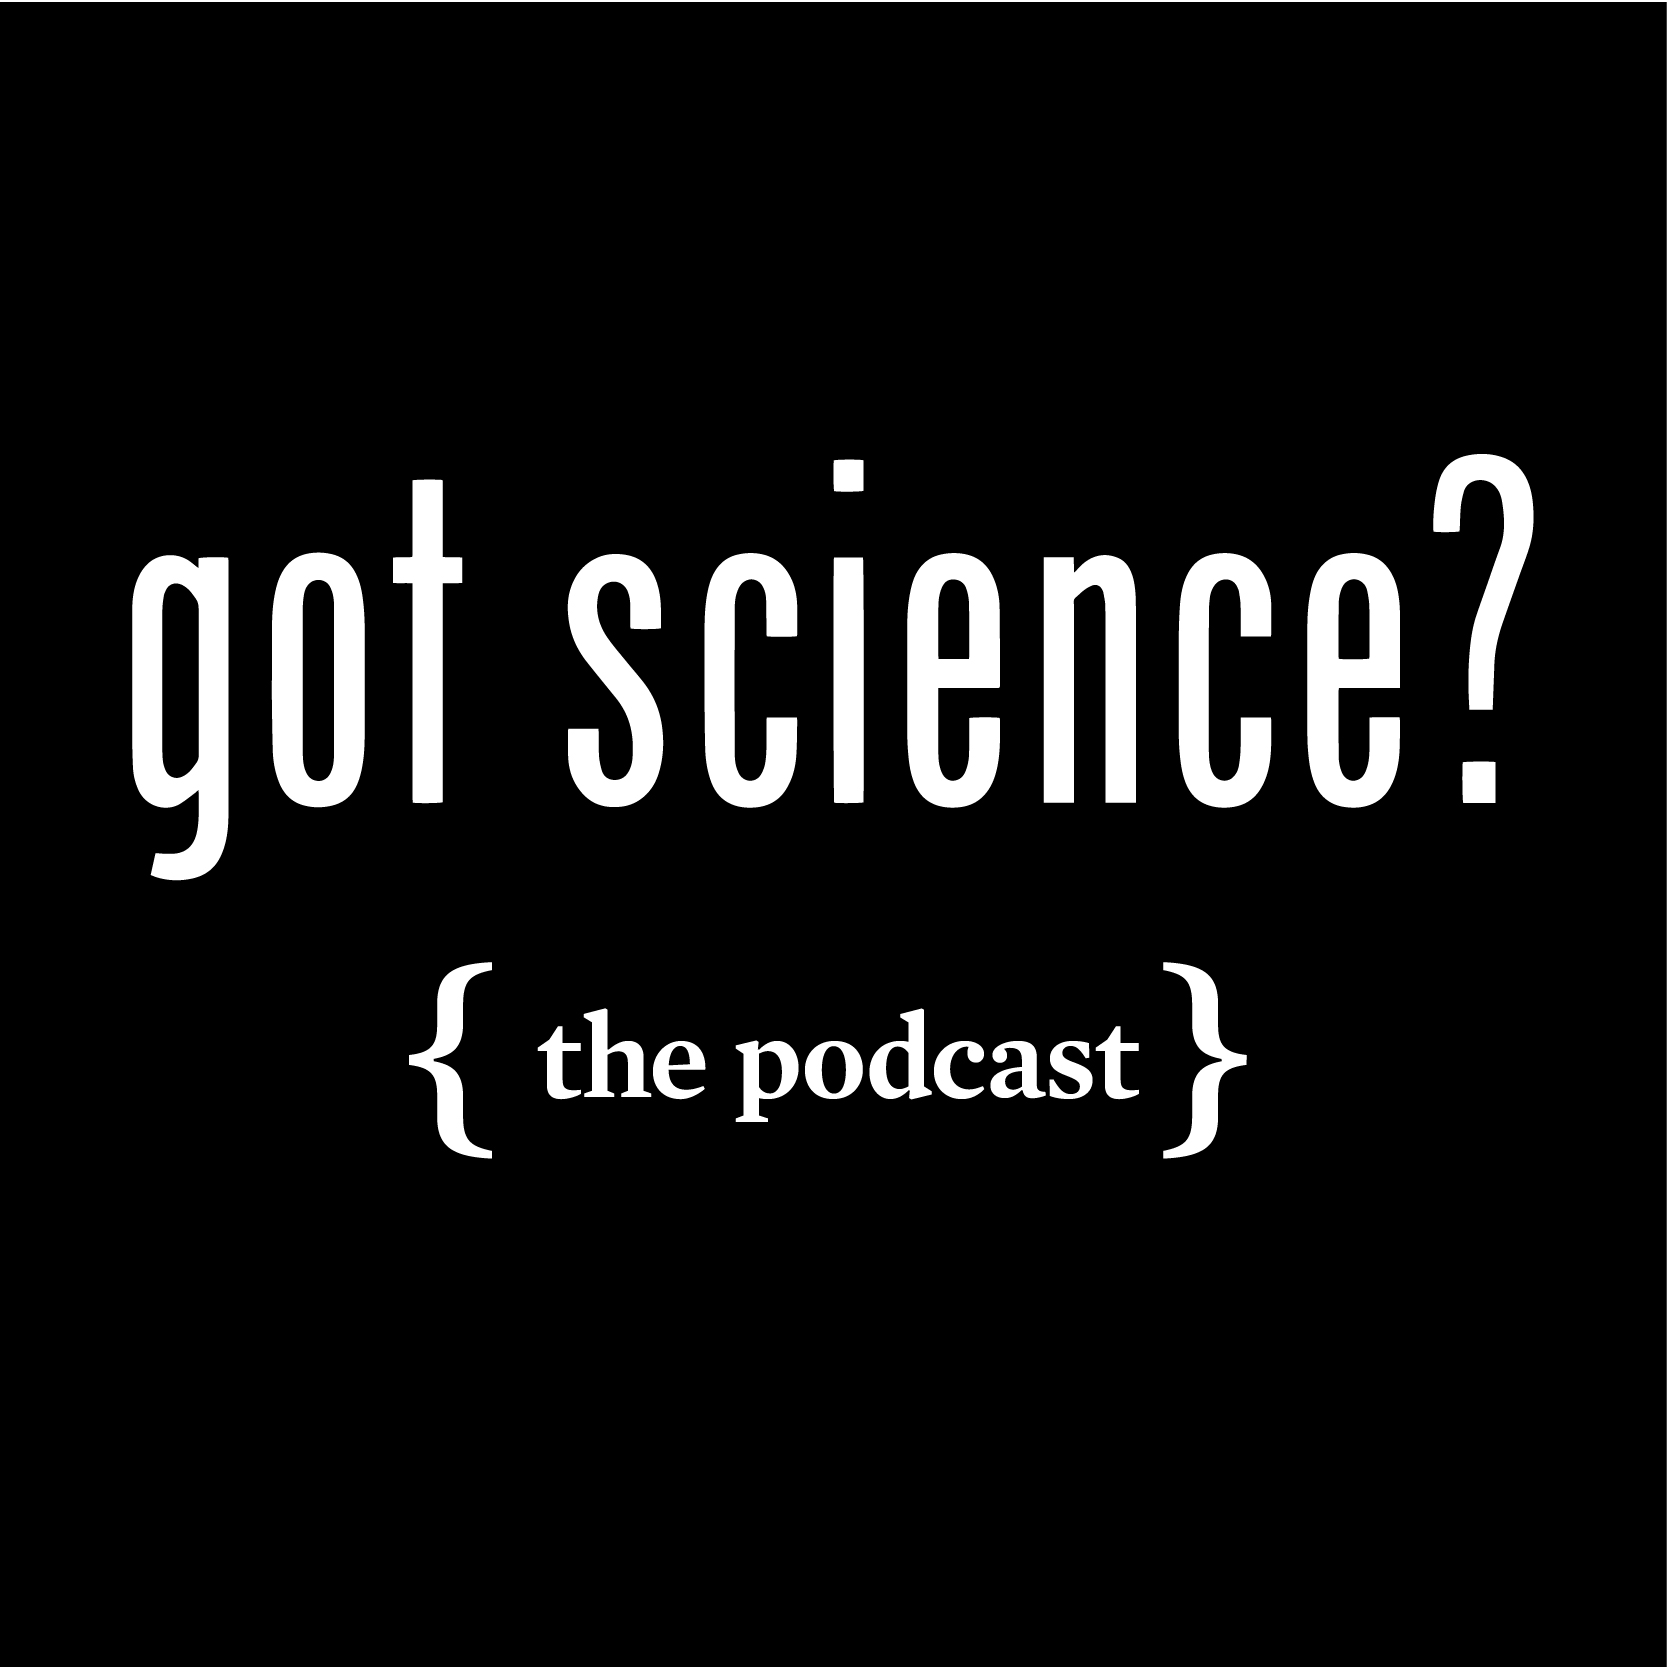 Got-science-podcast_small